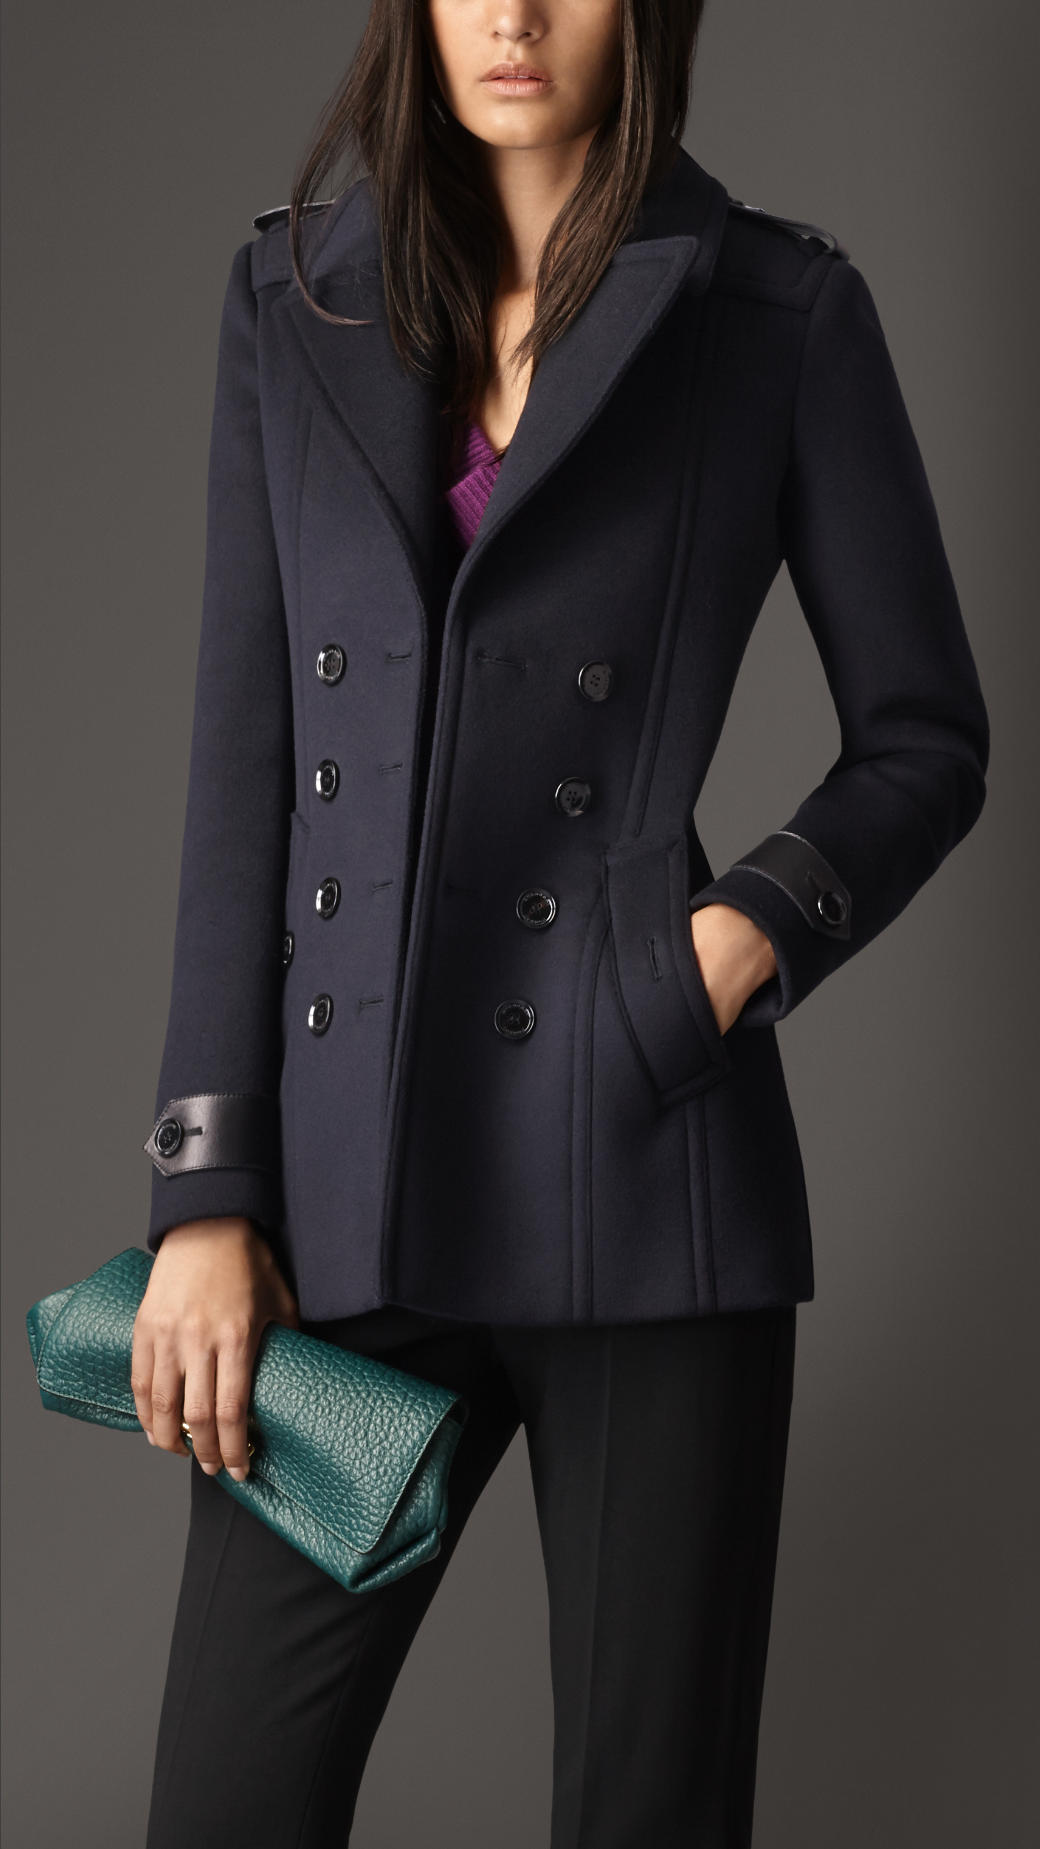 Burberry Tailored Wool Cashmere Pea Coat in Blue - Lyst e95bf35a0